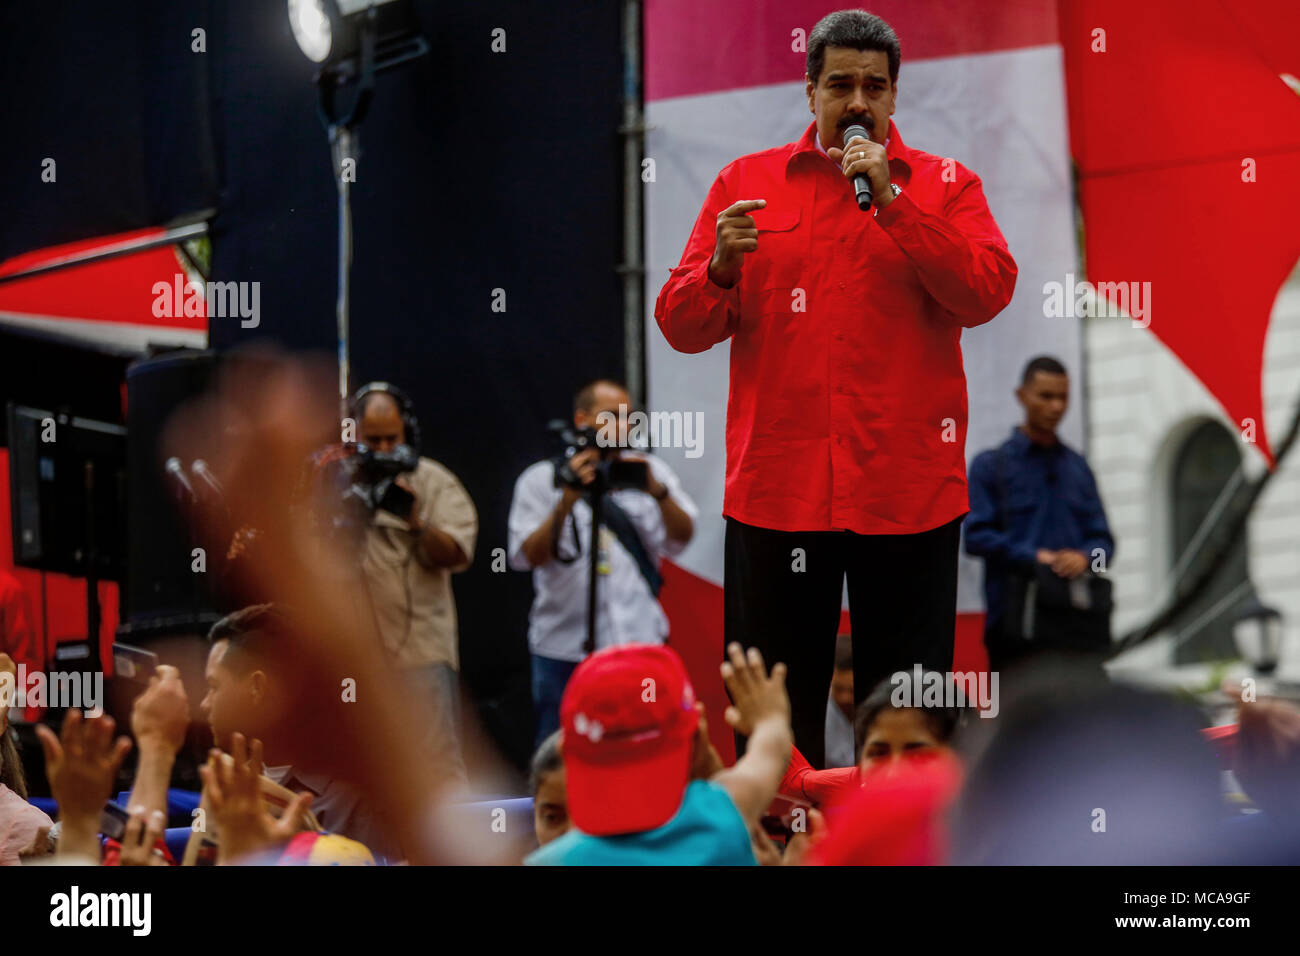 Caracas, Venezuela. 14th Apr, 2018. Venezuelan President Nicolás Maduro (c) speaks at a political event in Caracas, Venezuela, on 14 April 2018. Maduro called for peace and respect for Syria after condemning the attack by the United States, France and the United Kingdom against that country, and urged the governments of the world to demonstrate 'against war' and 'armamentism'. Credit: Cristian Hernández/EFE/Alamy Live News - Stock Image